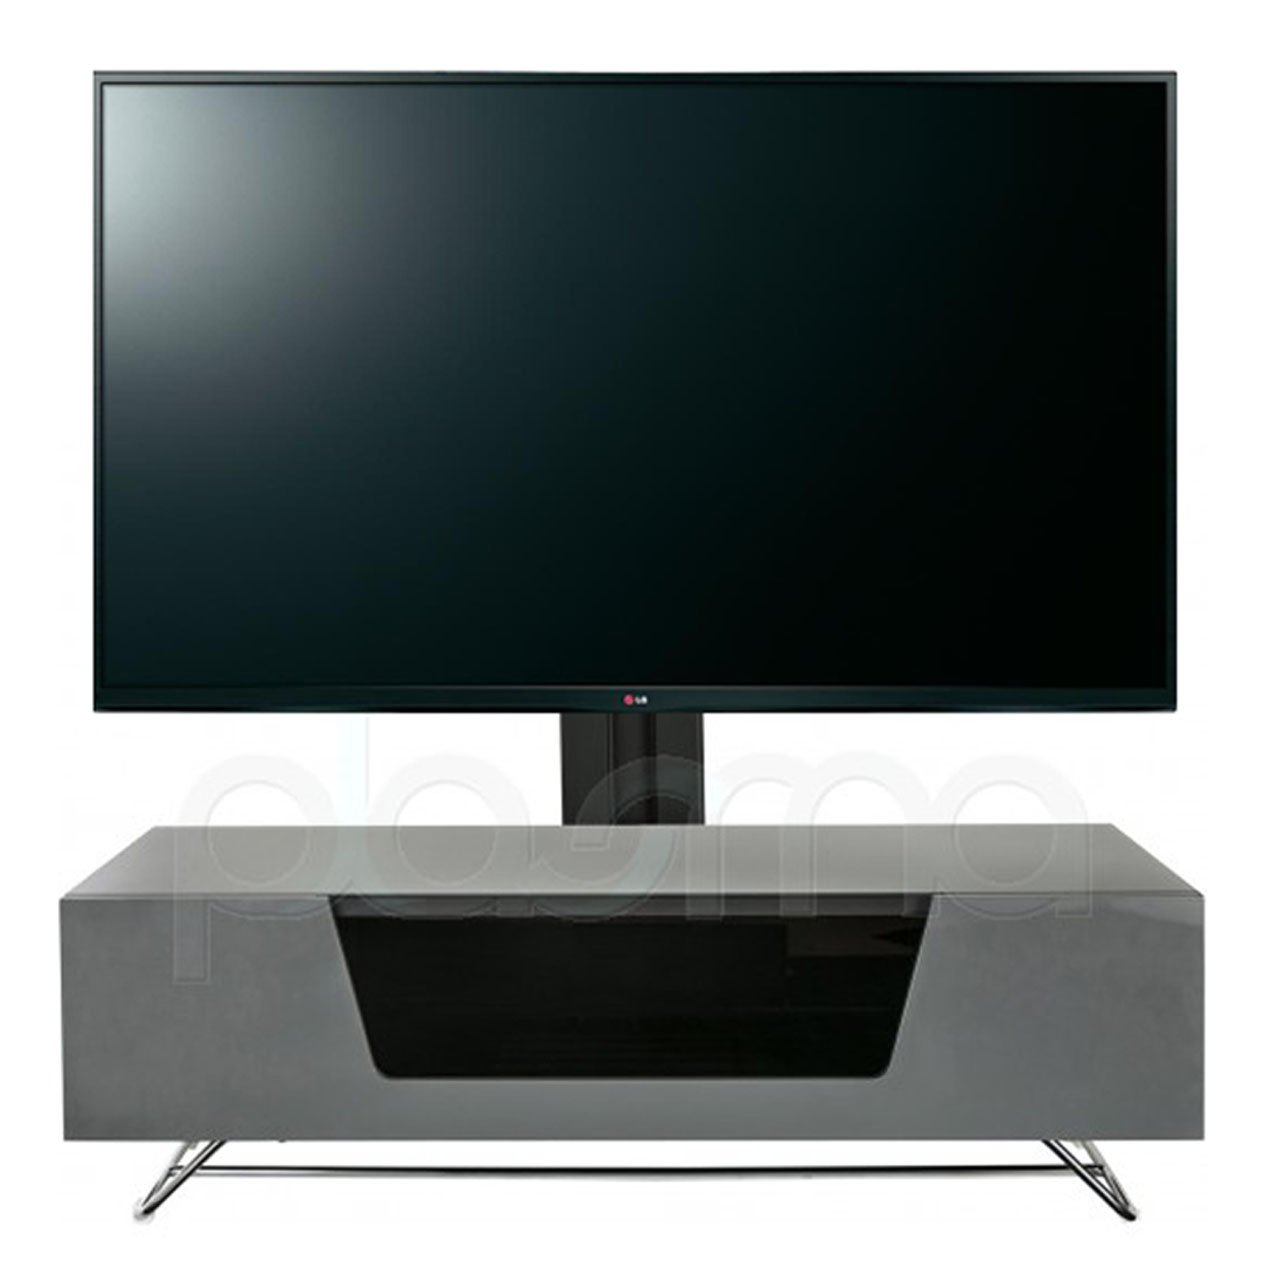 Alphason Chromium 2 1200 Cantilever Noir Meuble Tv Avec Support  # Meuble Tv Alphason